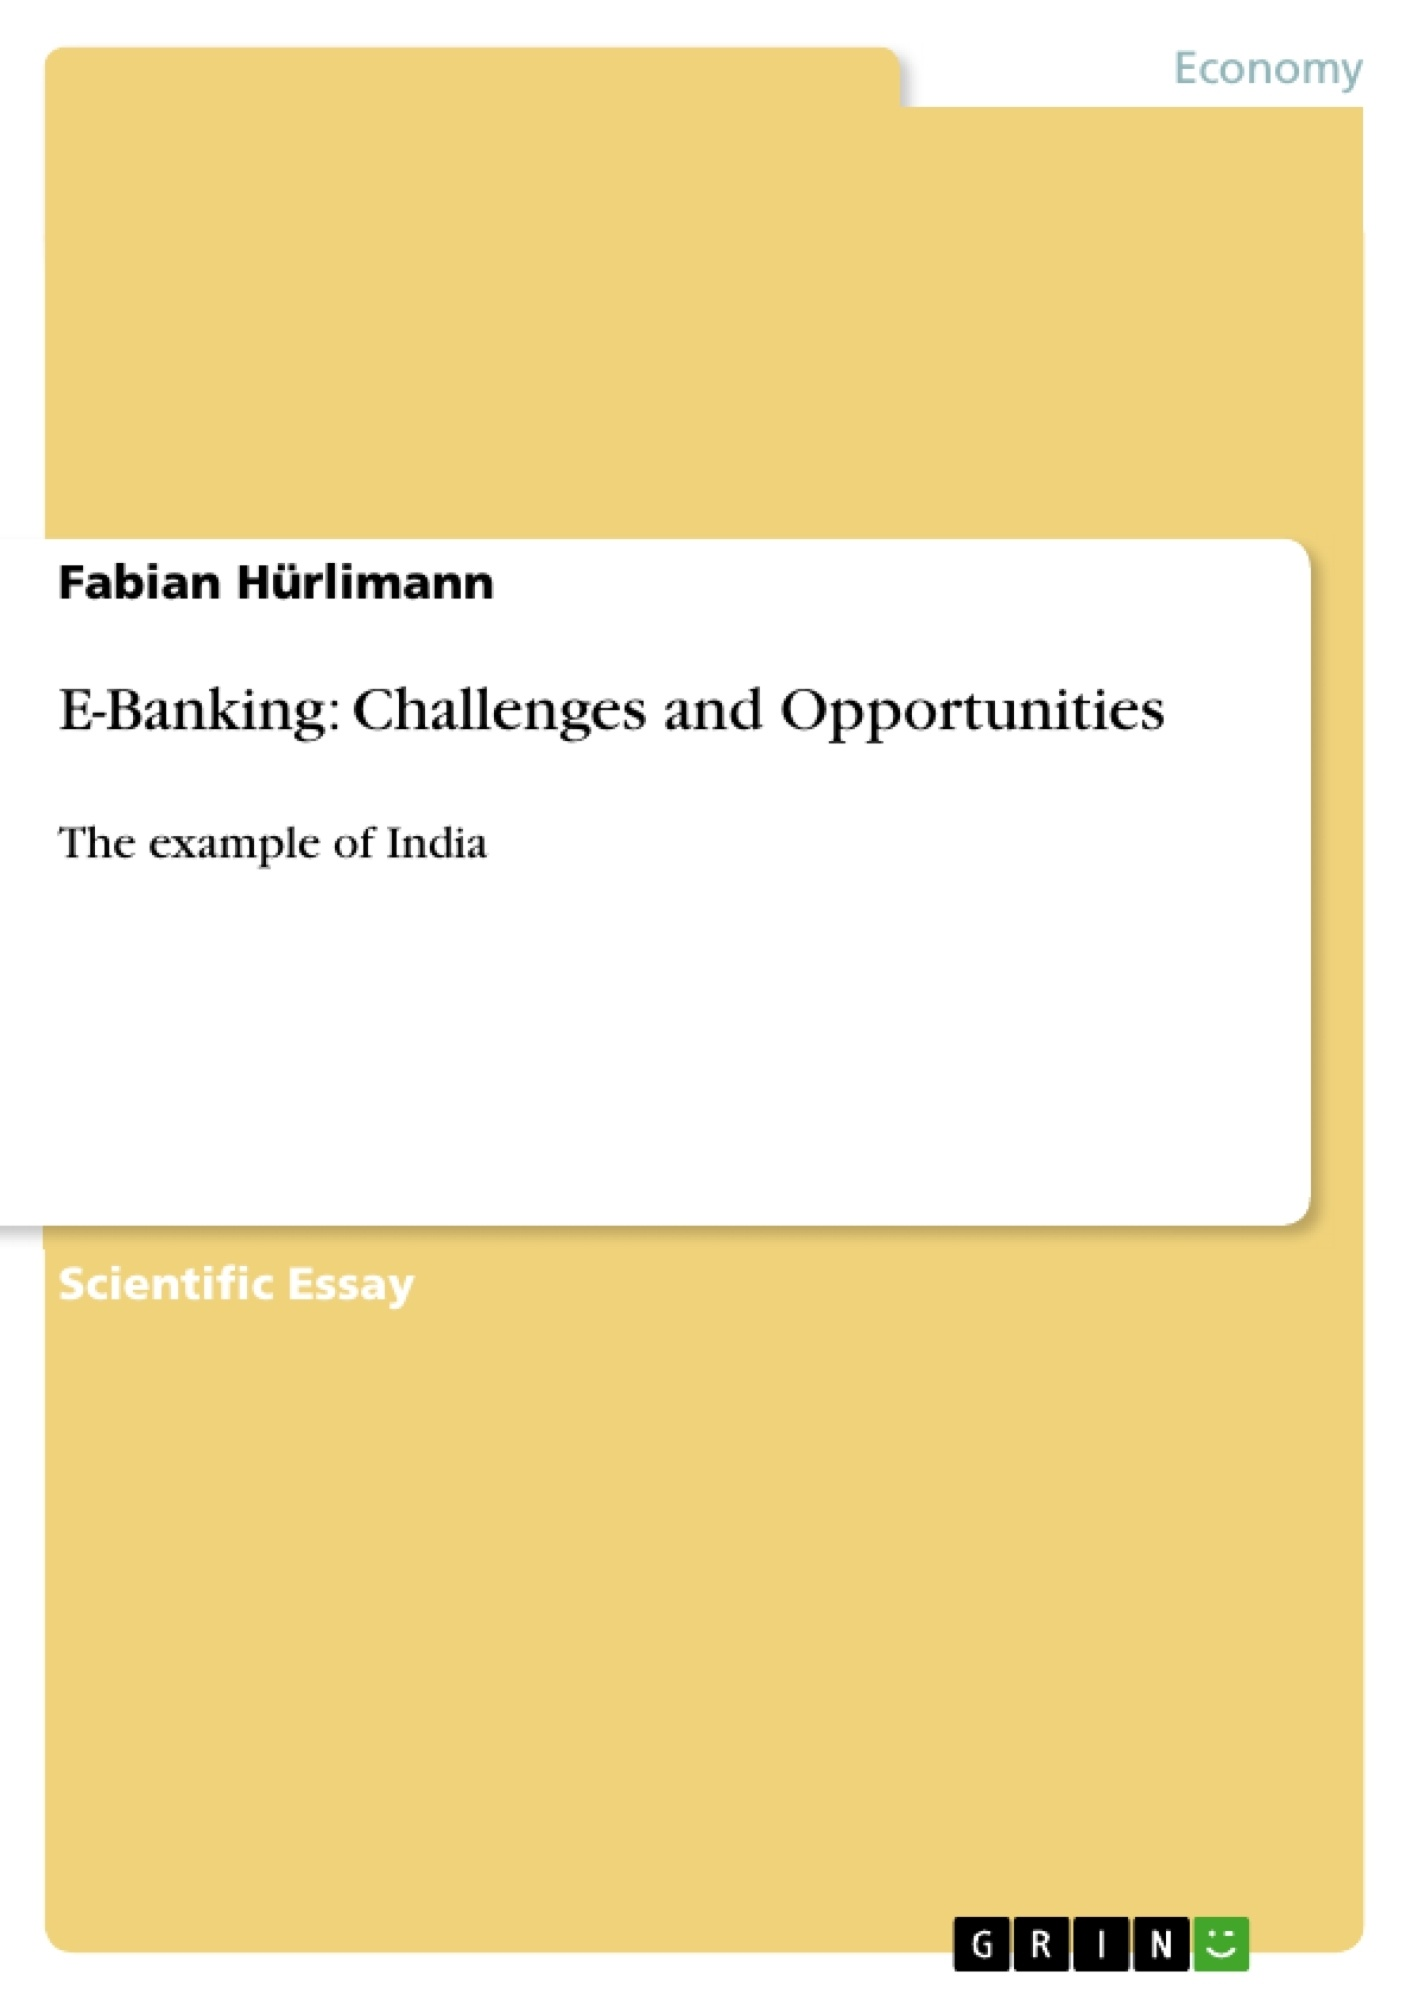 Title: E-Banking: Challenges and Opportunities